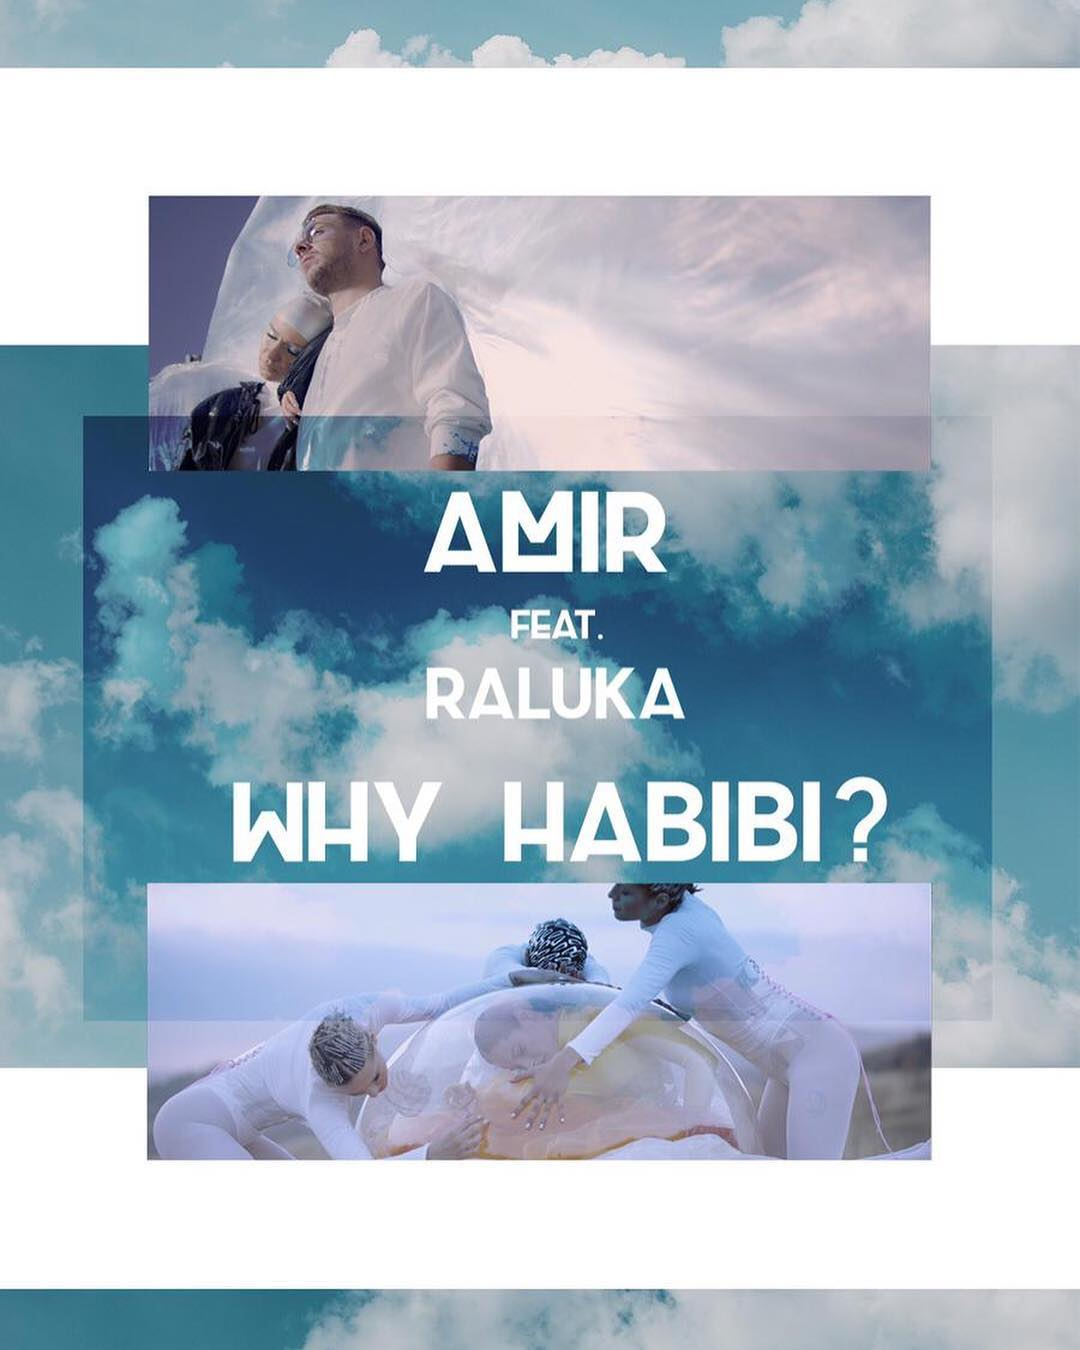 @ralukaofficial just launched a new song with @amirrofficial. #whyhabibi…